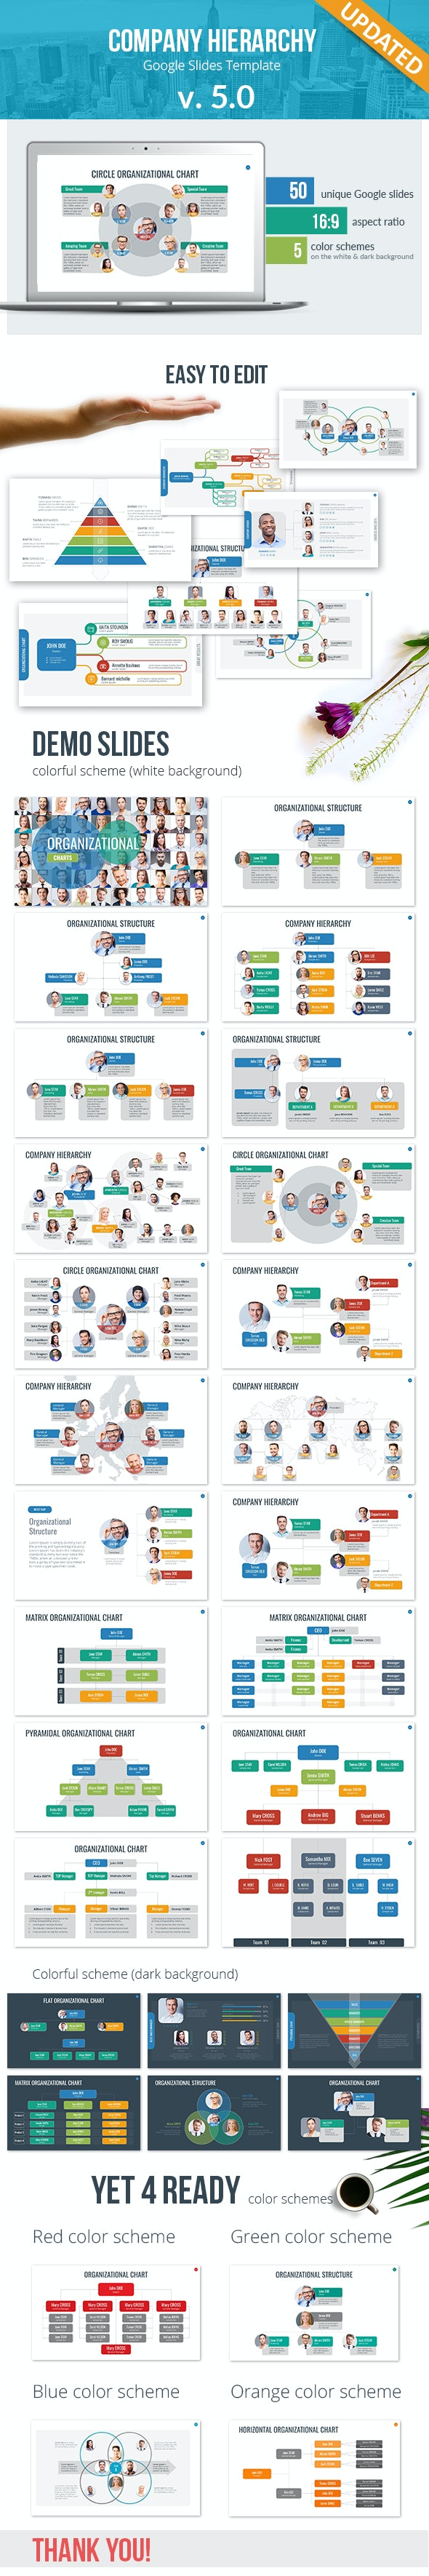 Organizational Chart and Hierarchy Google Slides Template - Google Slides Presentation Templates